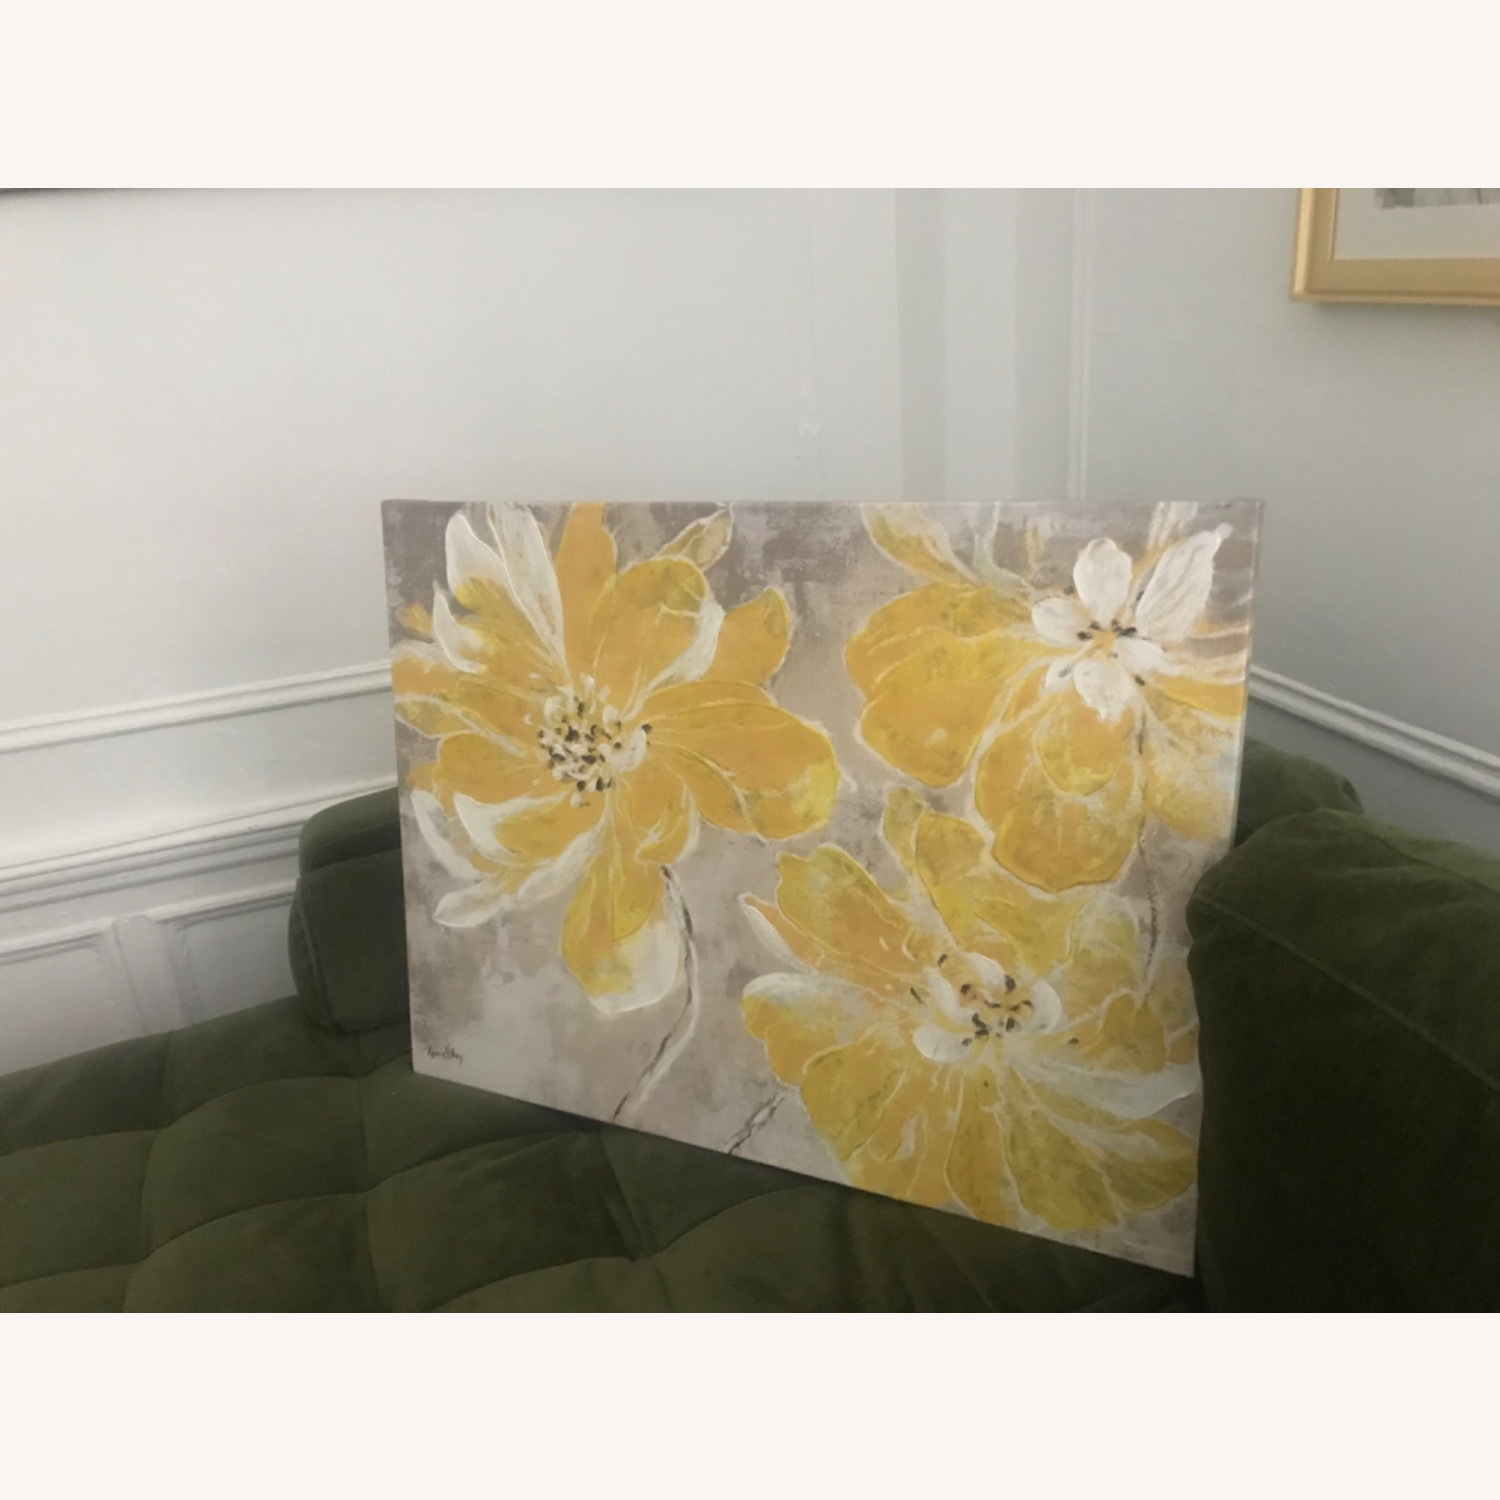 Gray & Yellow Floral Canvas - image-2